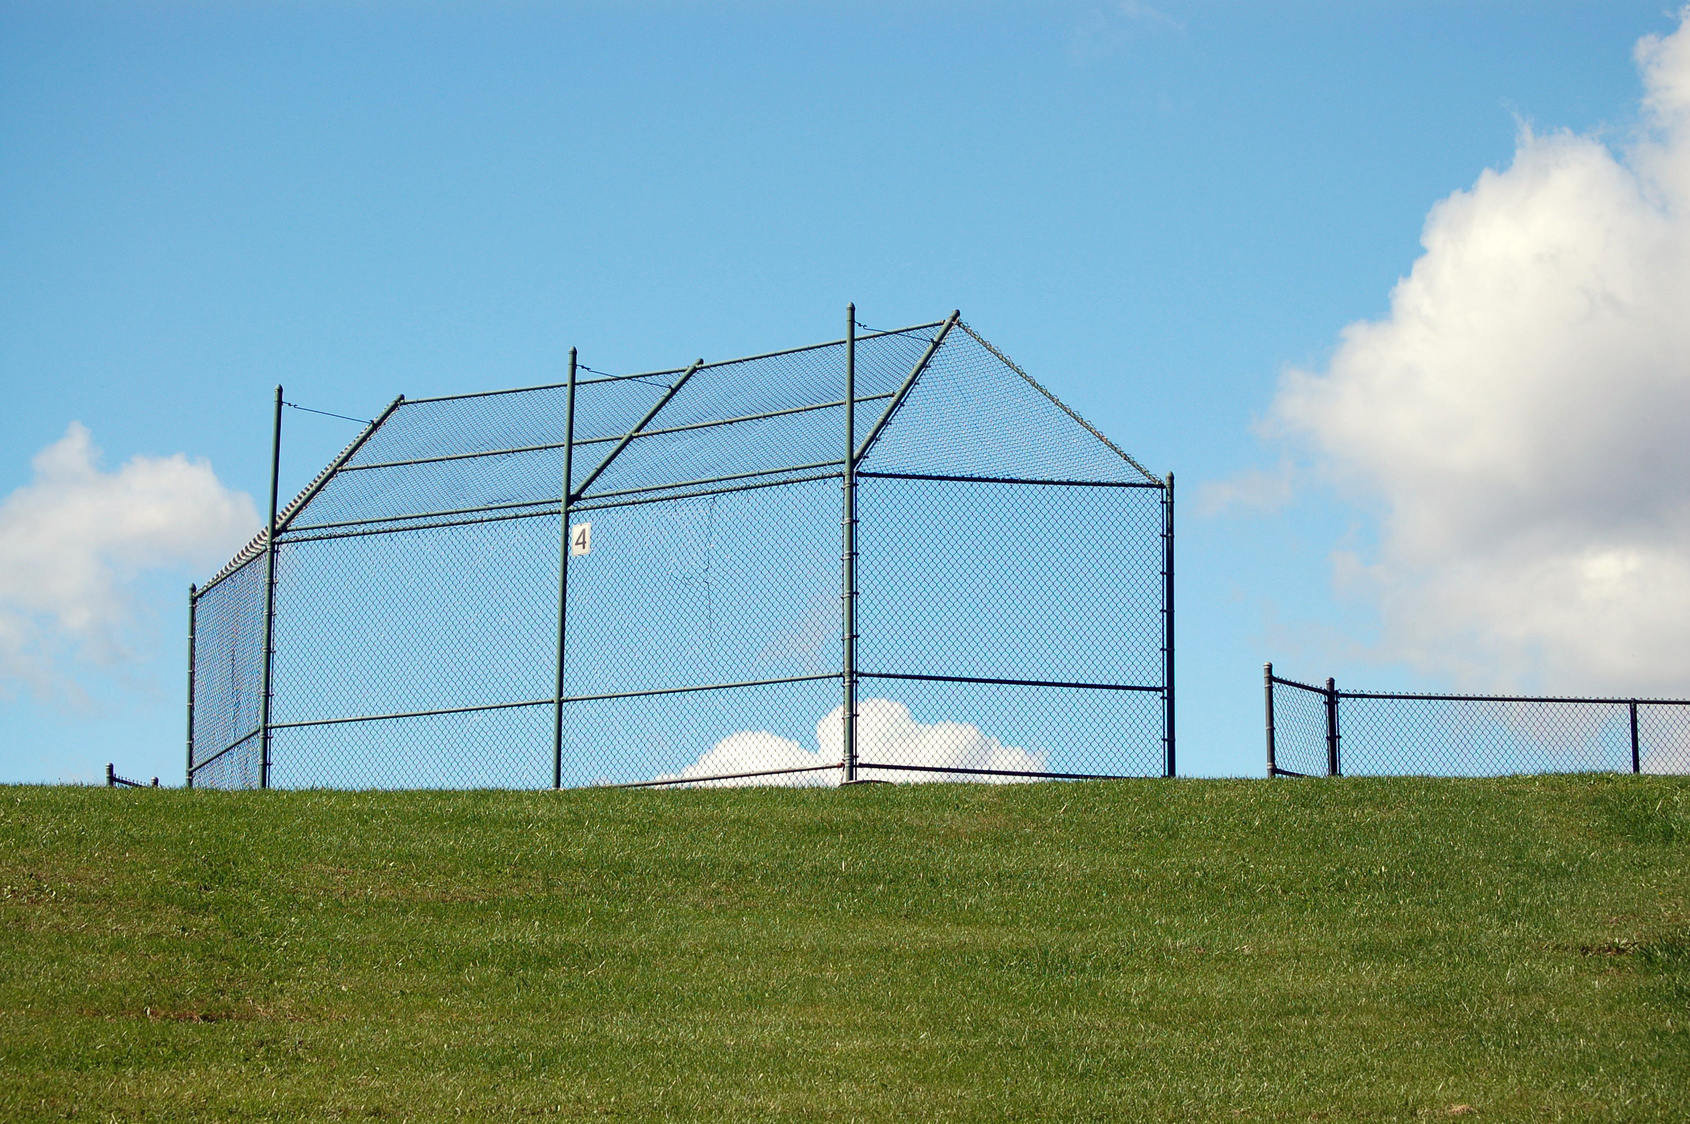 ballfield fence for school in knoxville